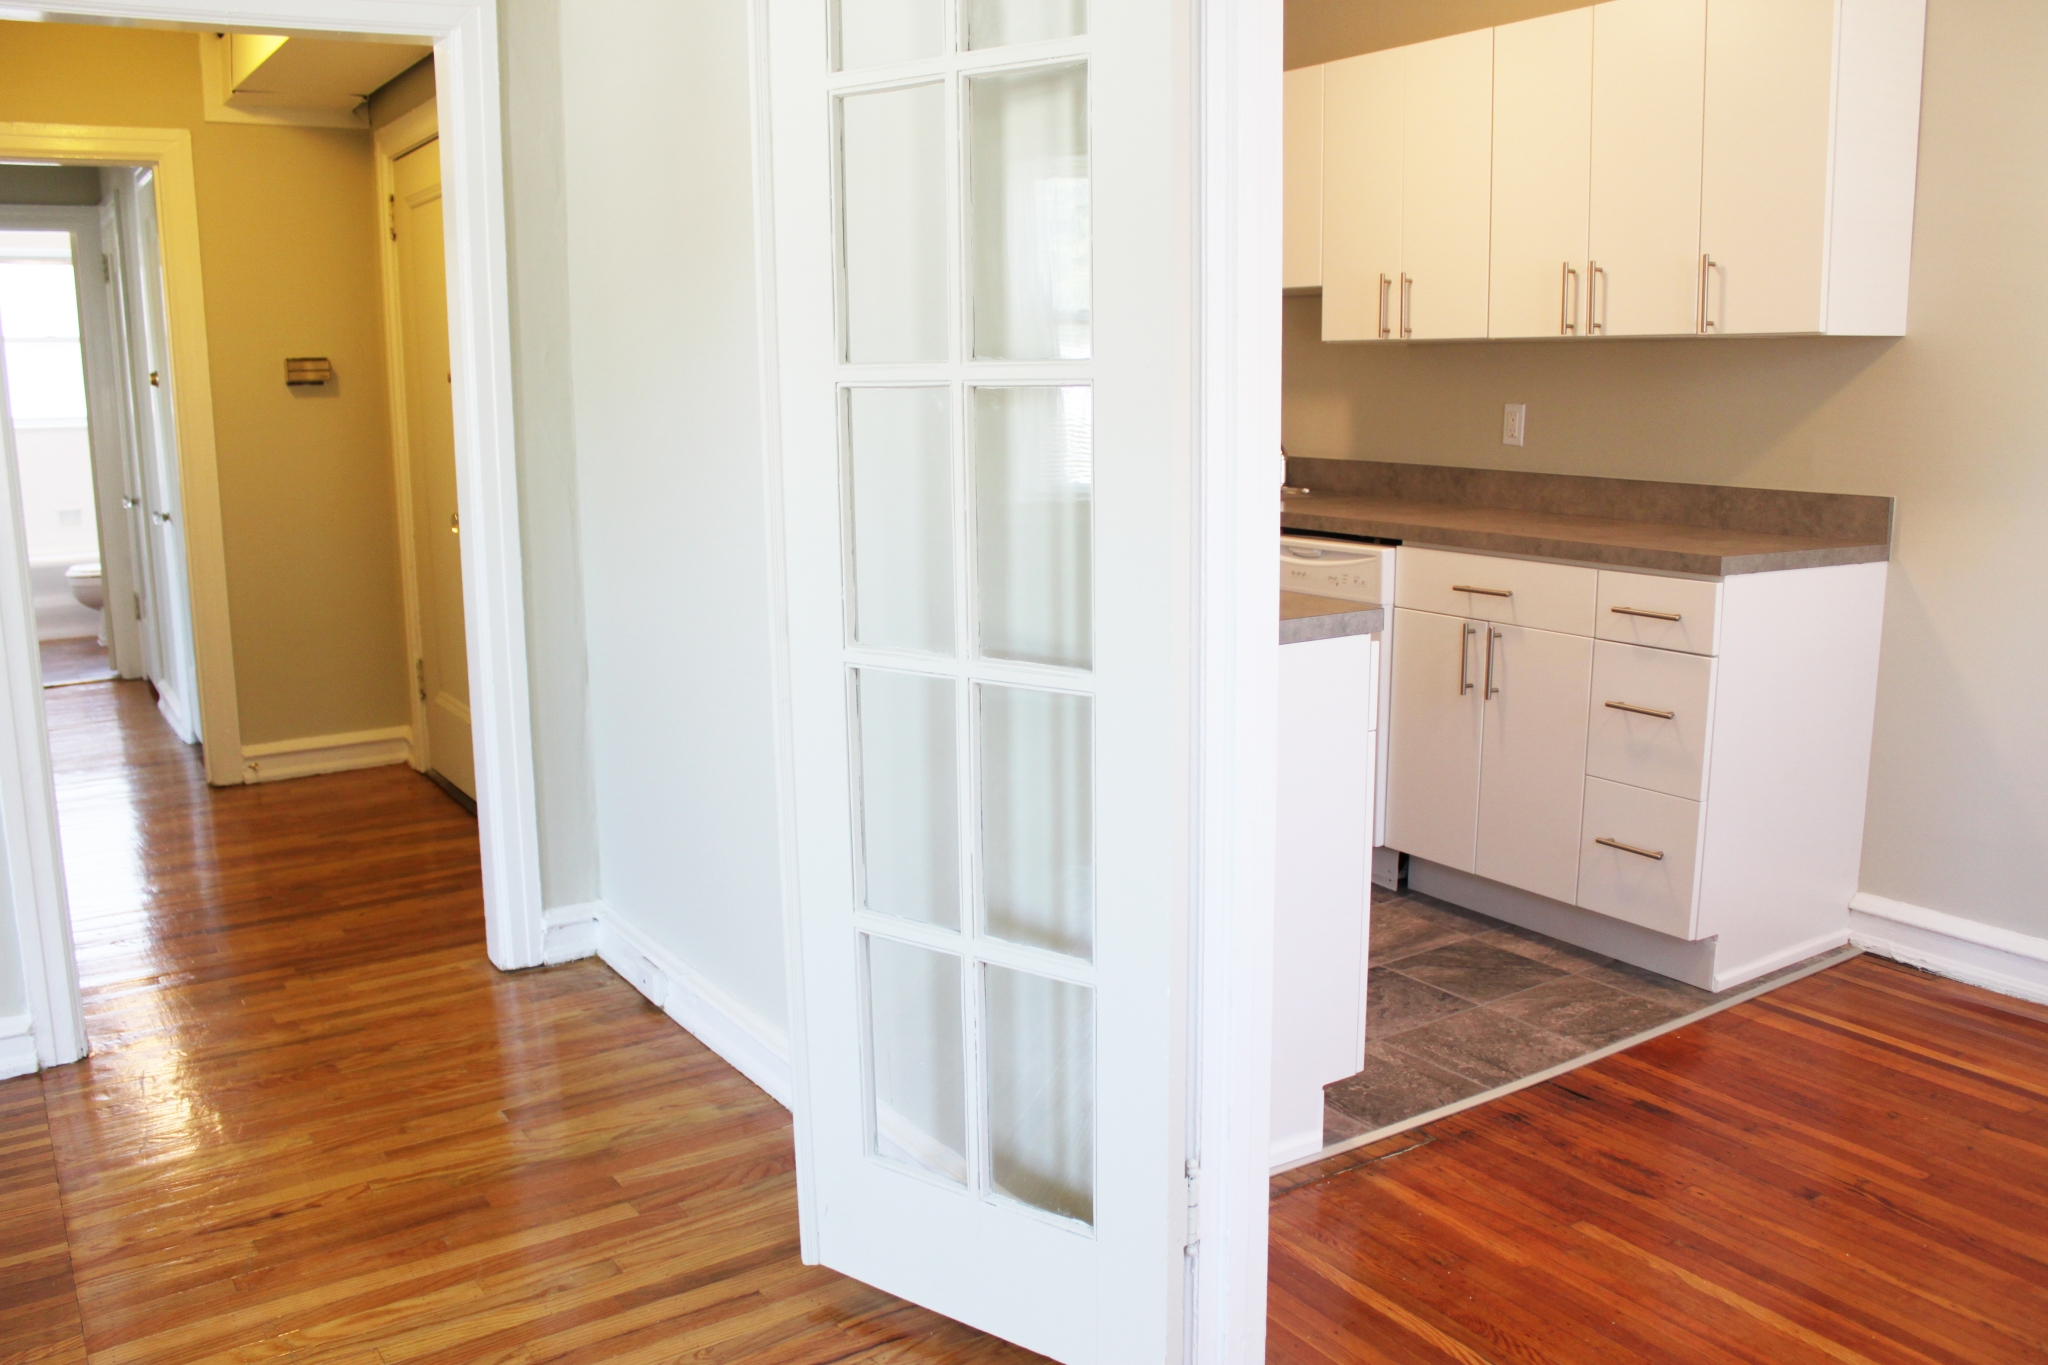 Spacious Kitchen | Apartments for rent in Ardmore, PA | Suburban Court Apartments